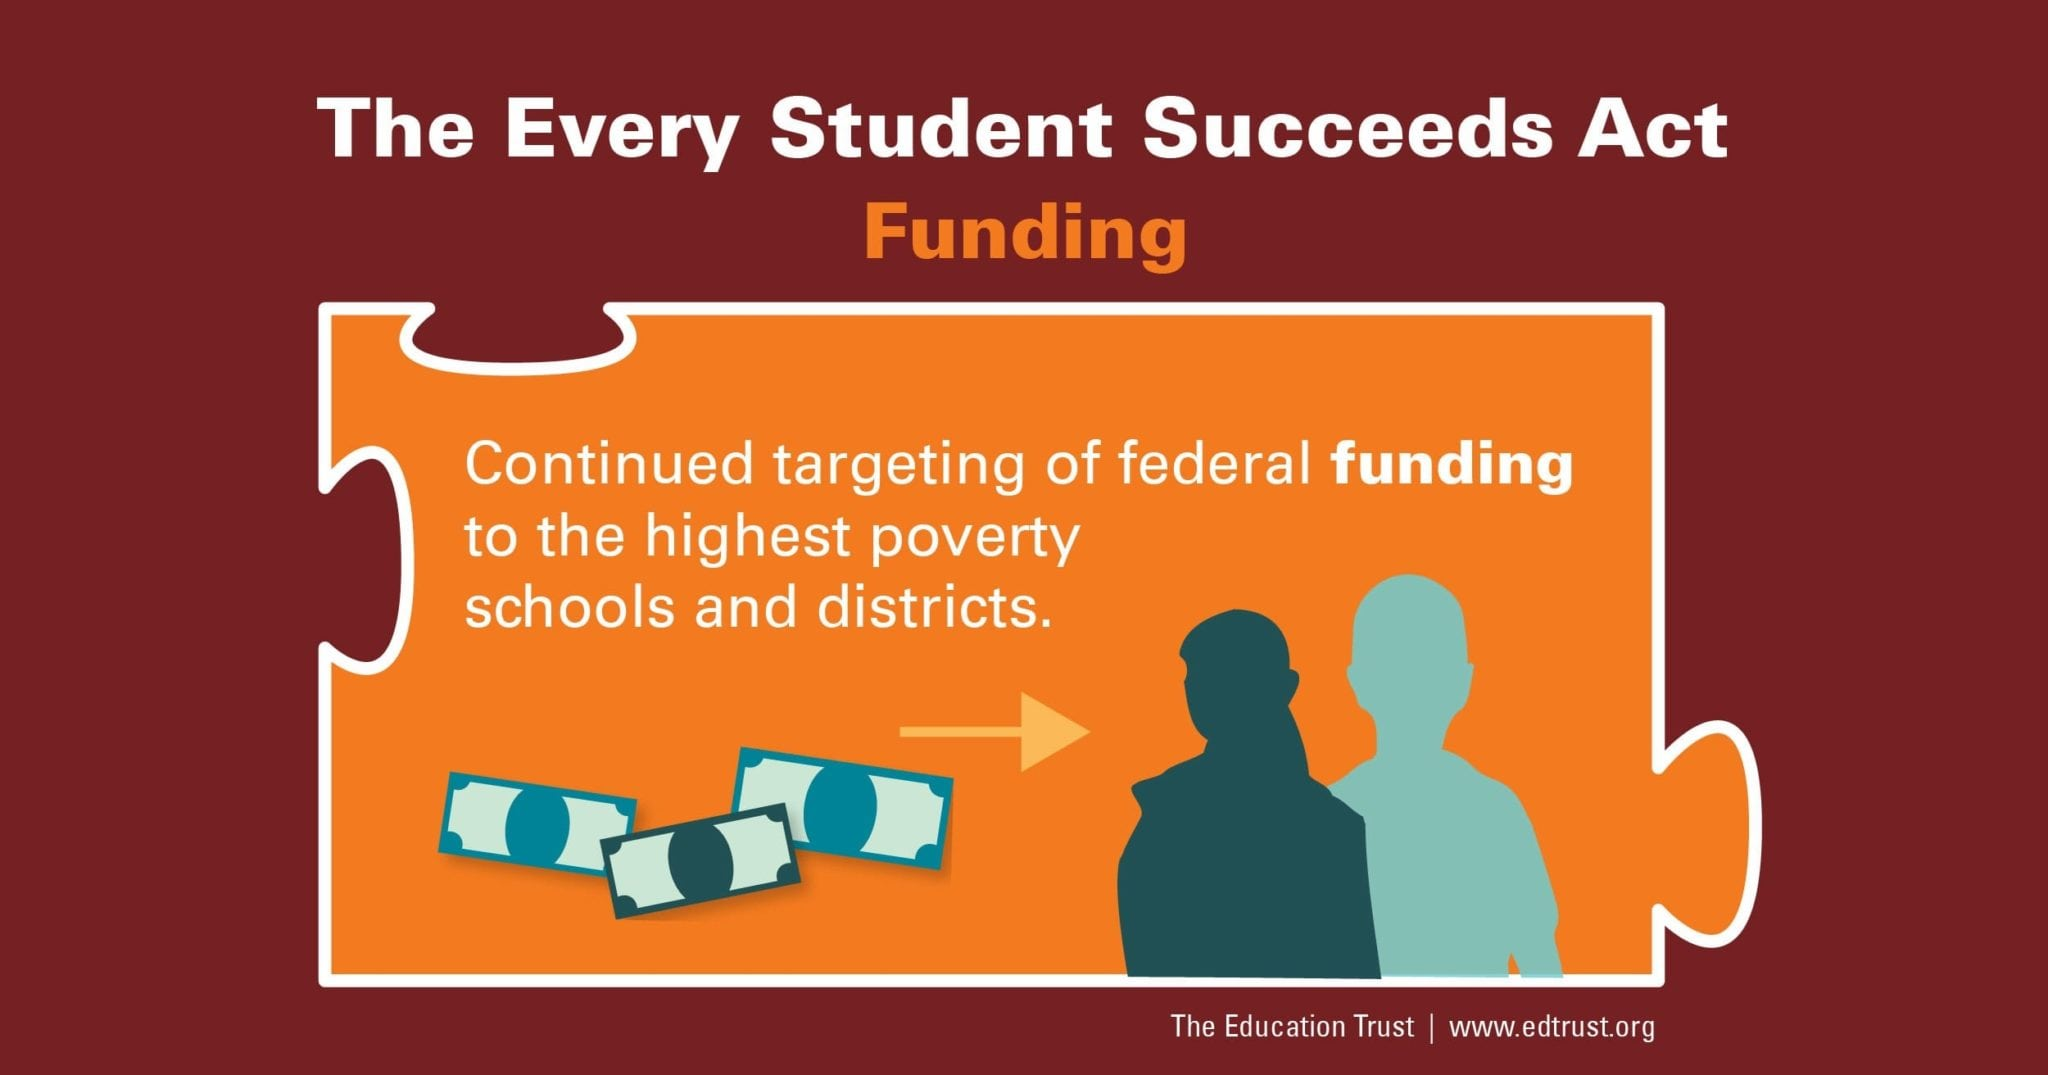 The Every Student Succeeds Act >> What S In The Every Student Succeeds Act Funding The Education